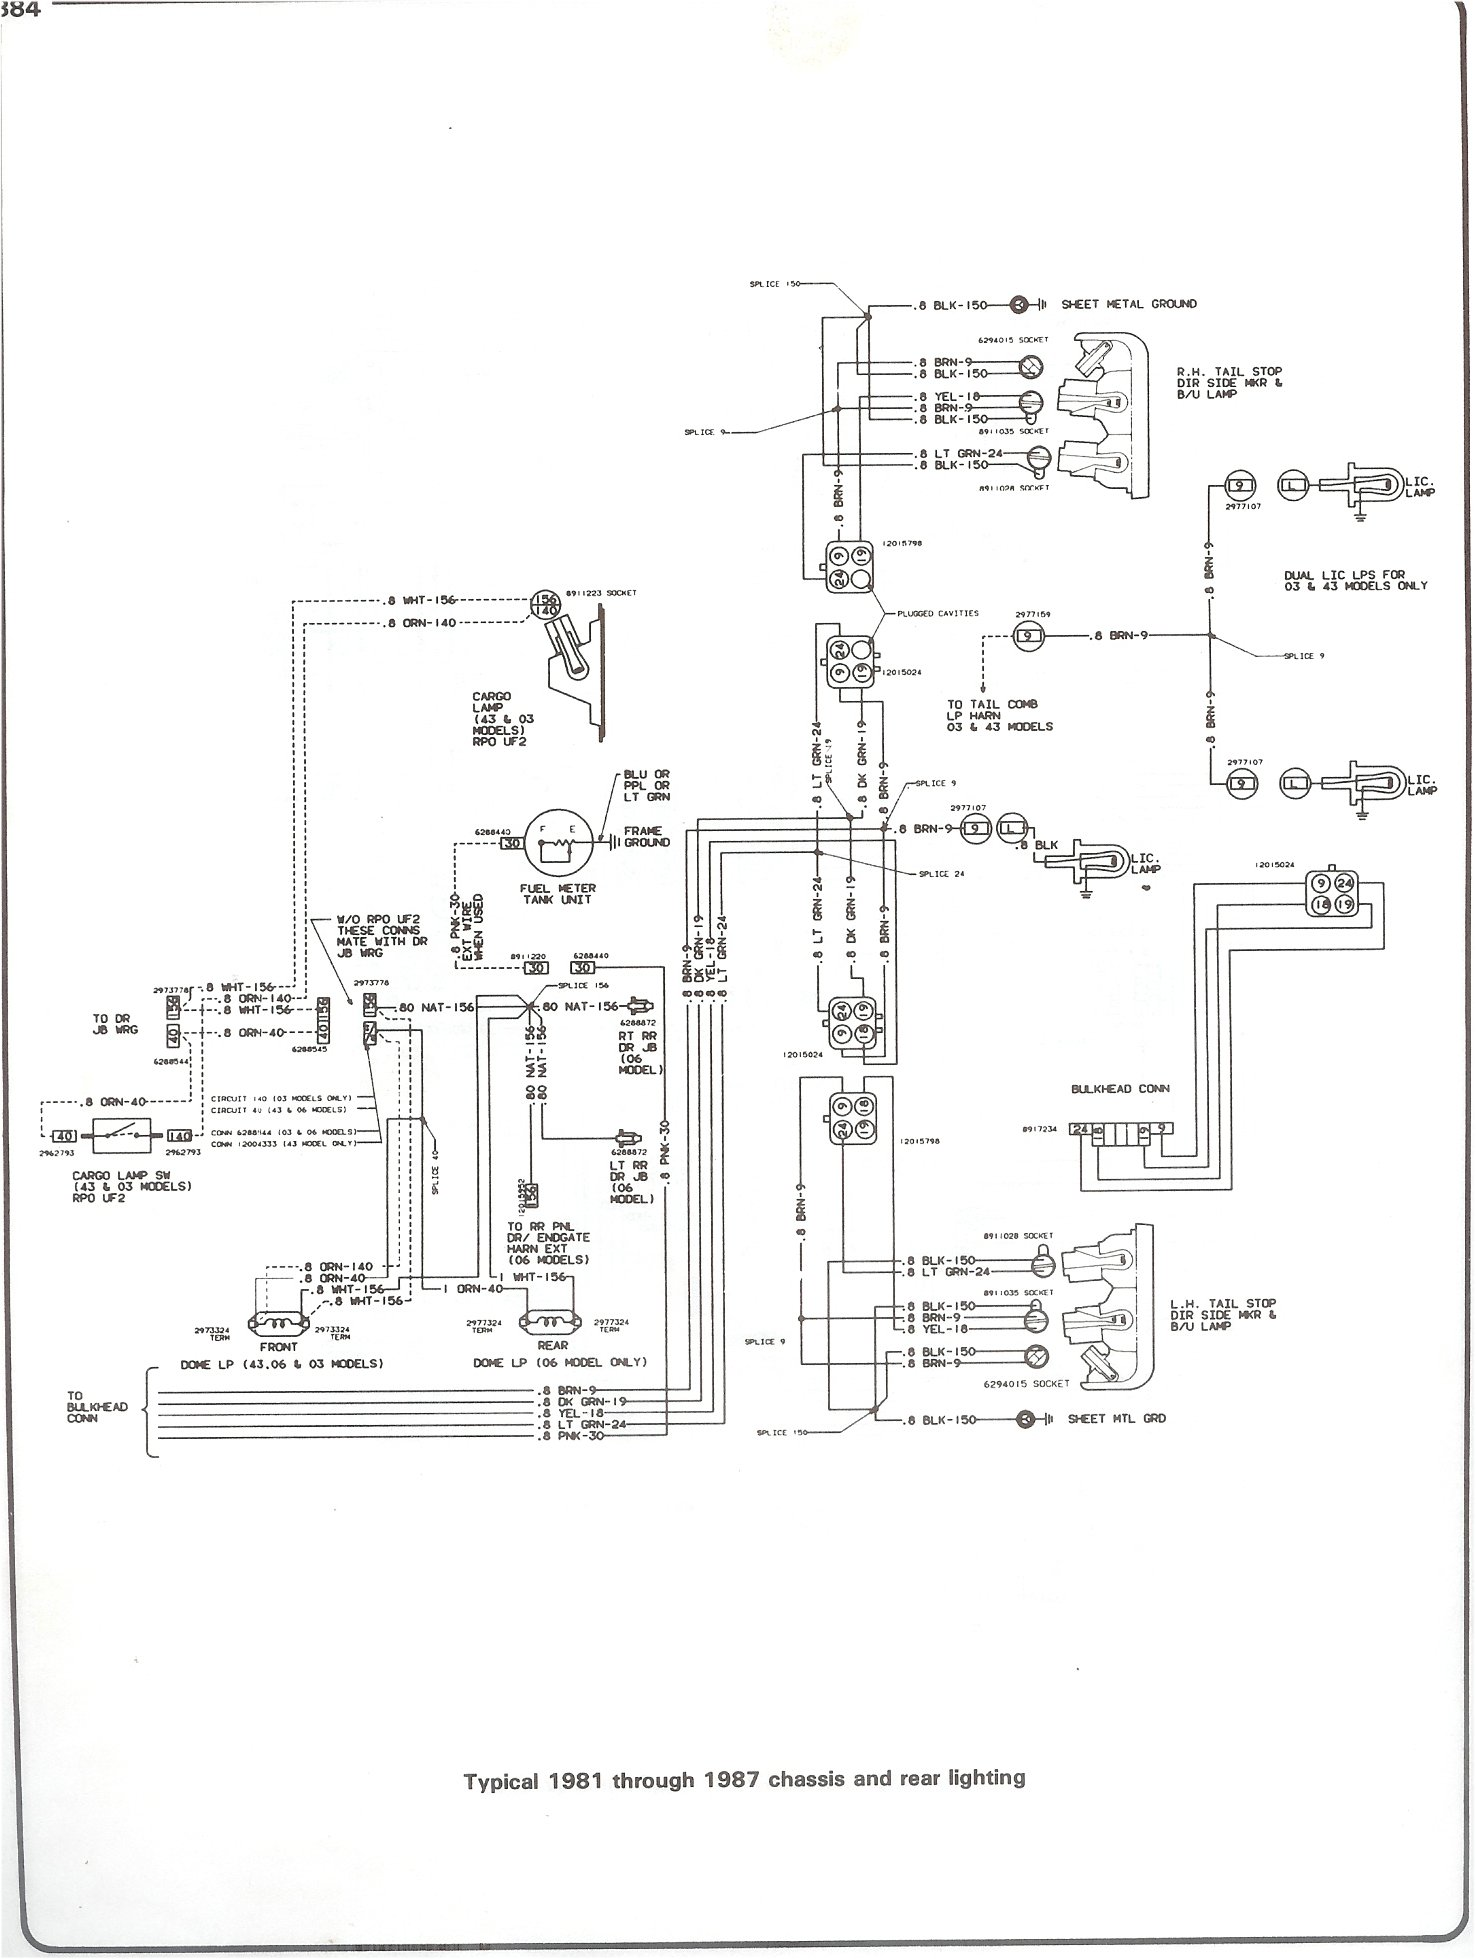 hight resolution of 84 silverado wiring diagram 11 13 tierarztpraxis ruffy de u2022 rh 11 13 tierarztpraxis ruffy de 1985 chevy truck wiring diagram 1985 chevy truck wiring